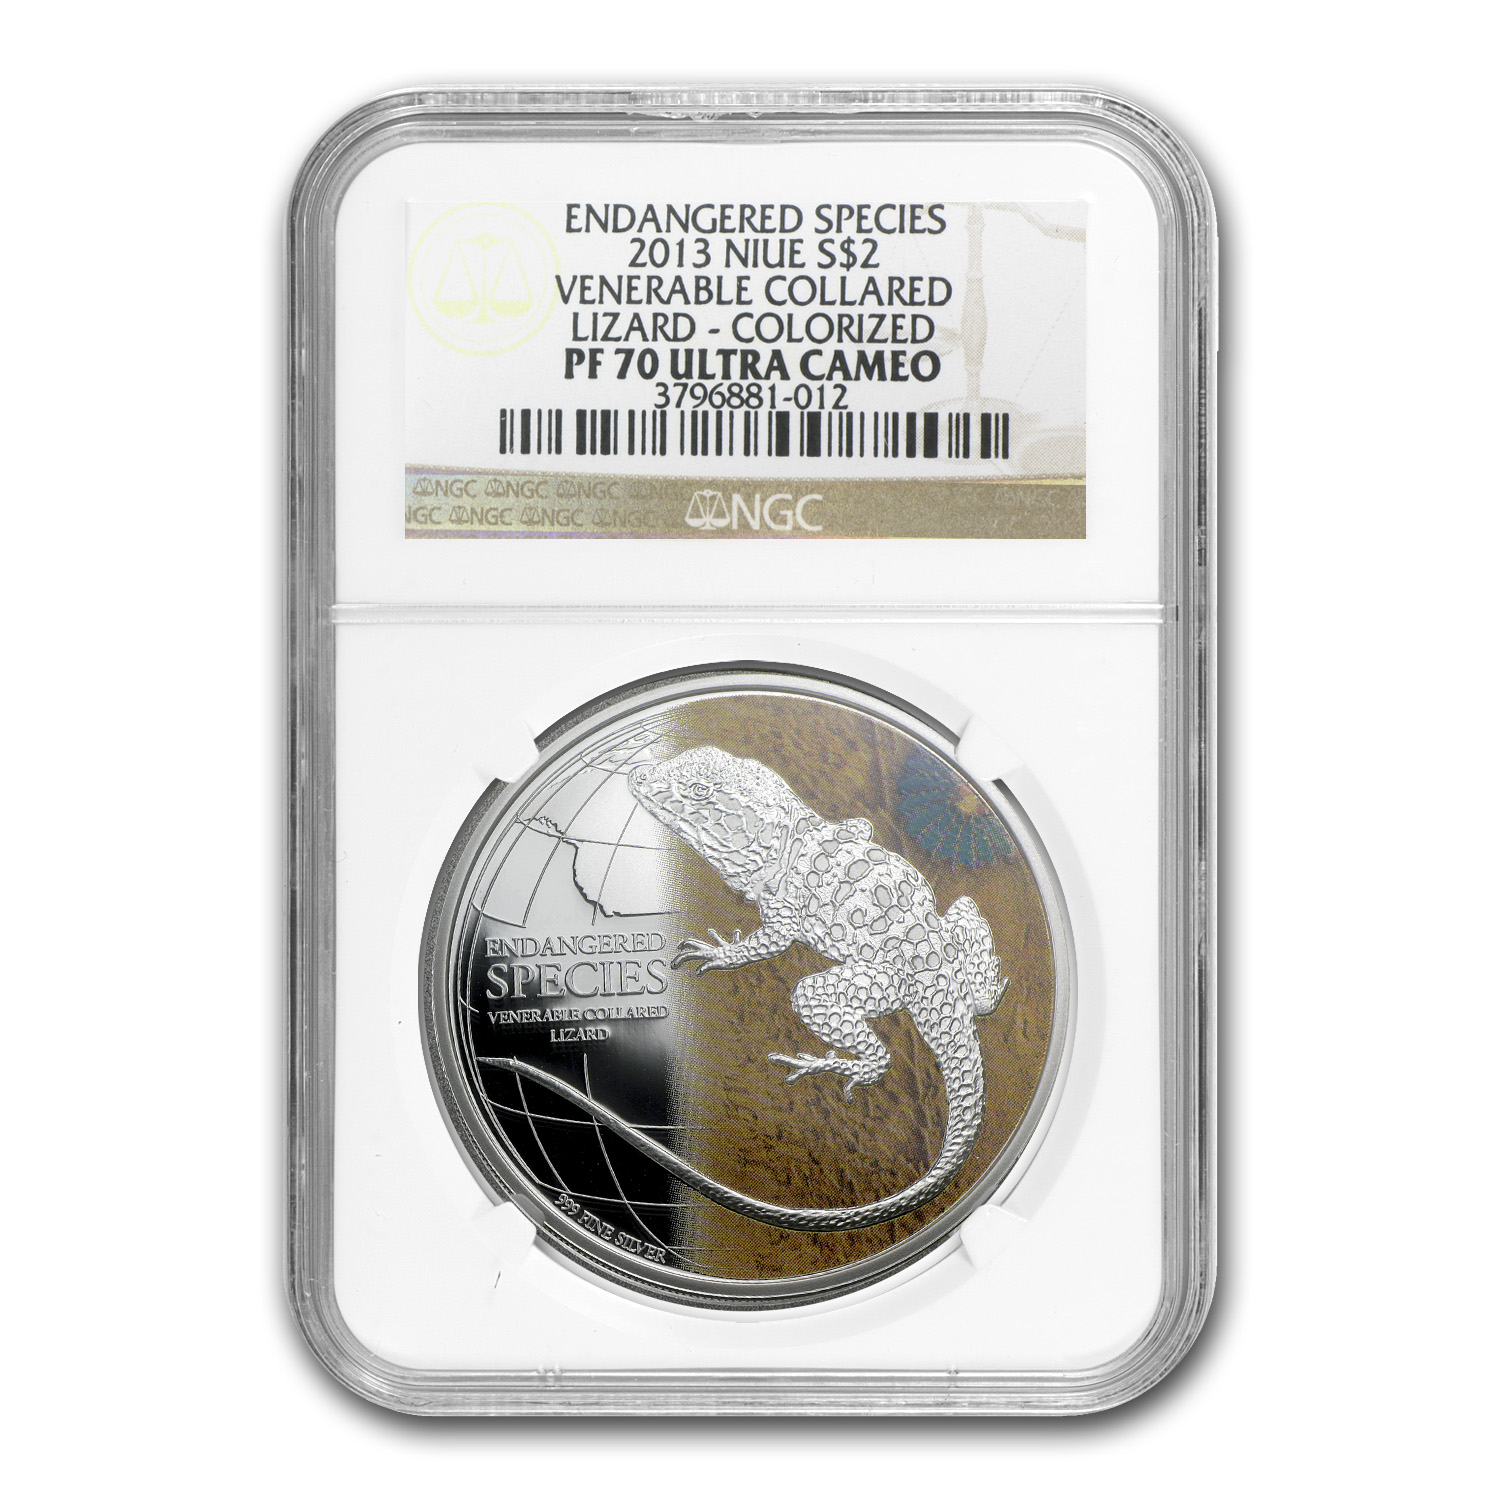 2013 1 oz Silver Endangered Venerable Collared Lizard NGC PF-70